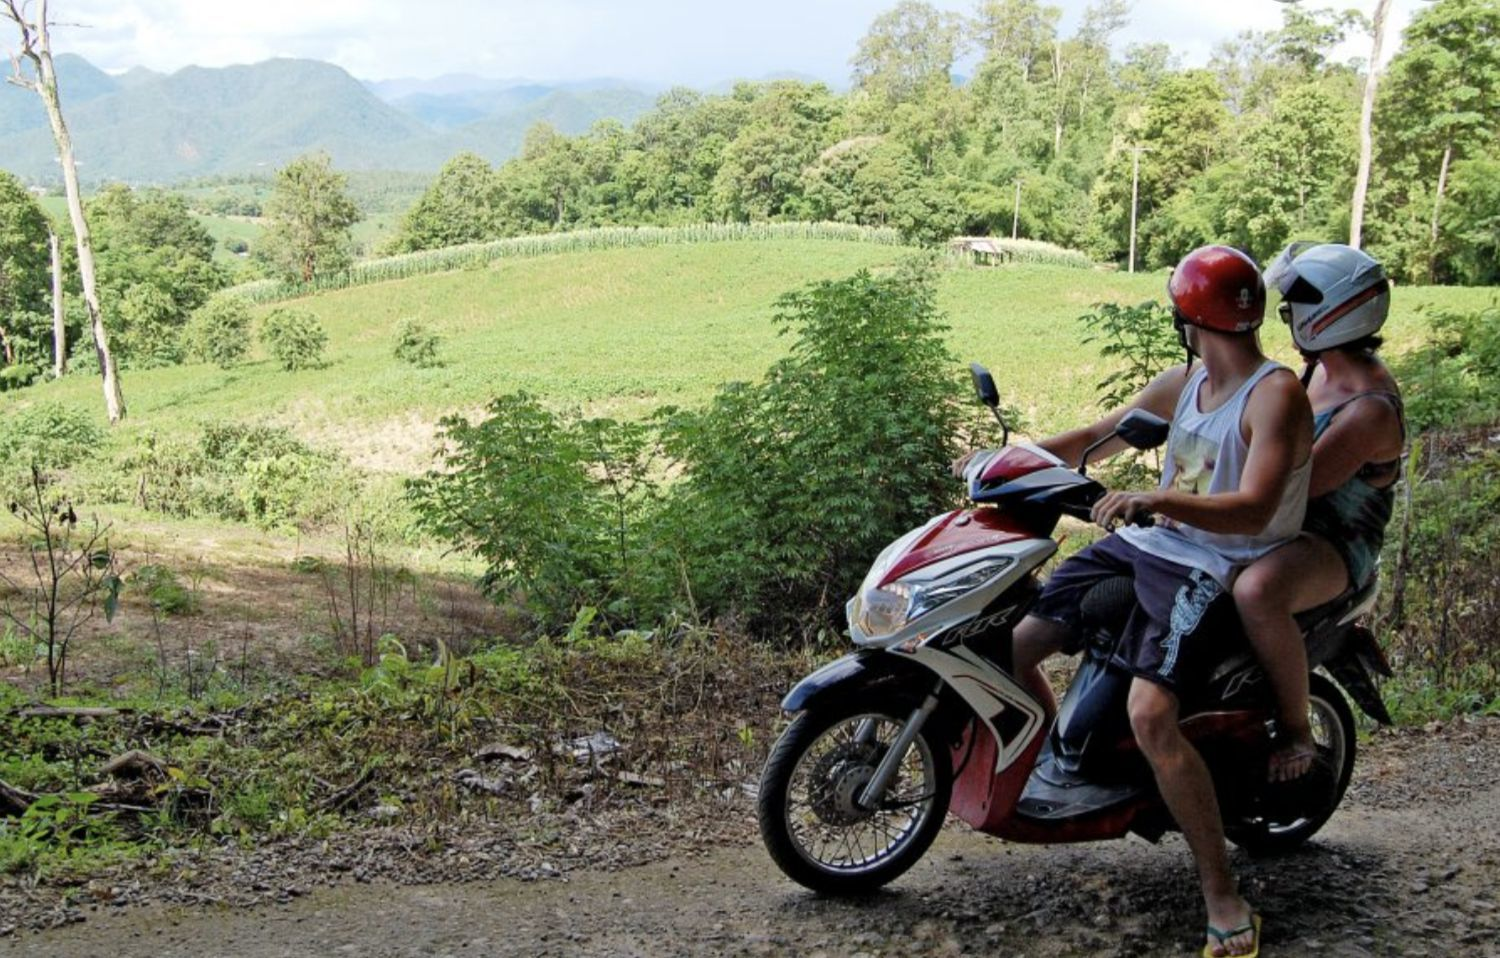 Riding and renting a motorbike in Thailand | Top 10 tips | VIDEO | Thaiger